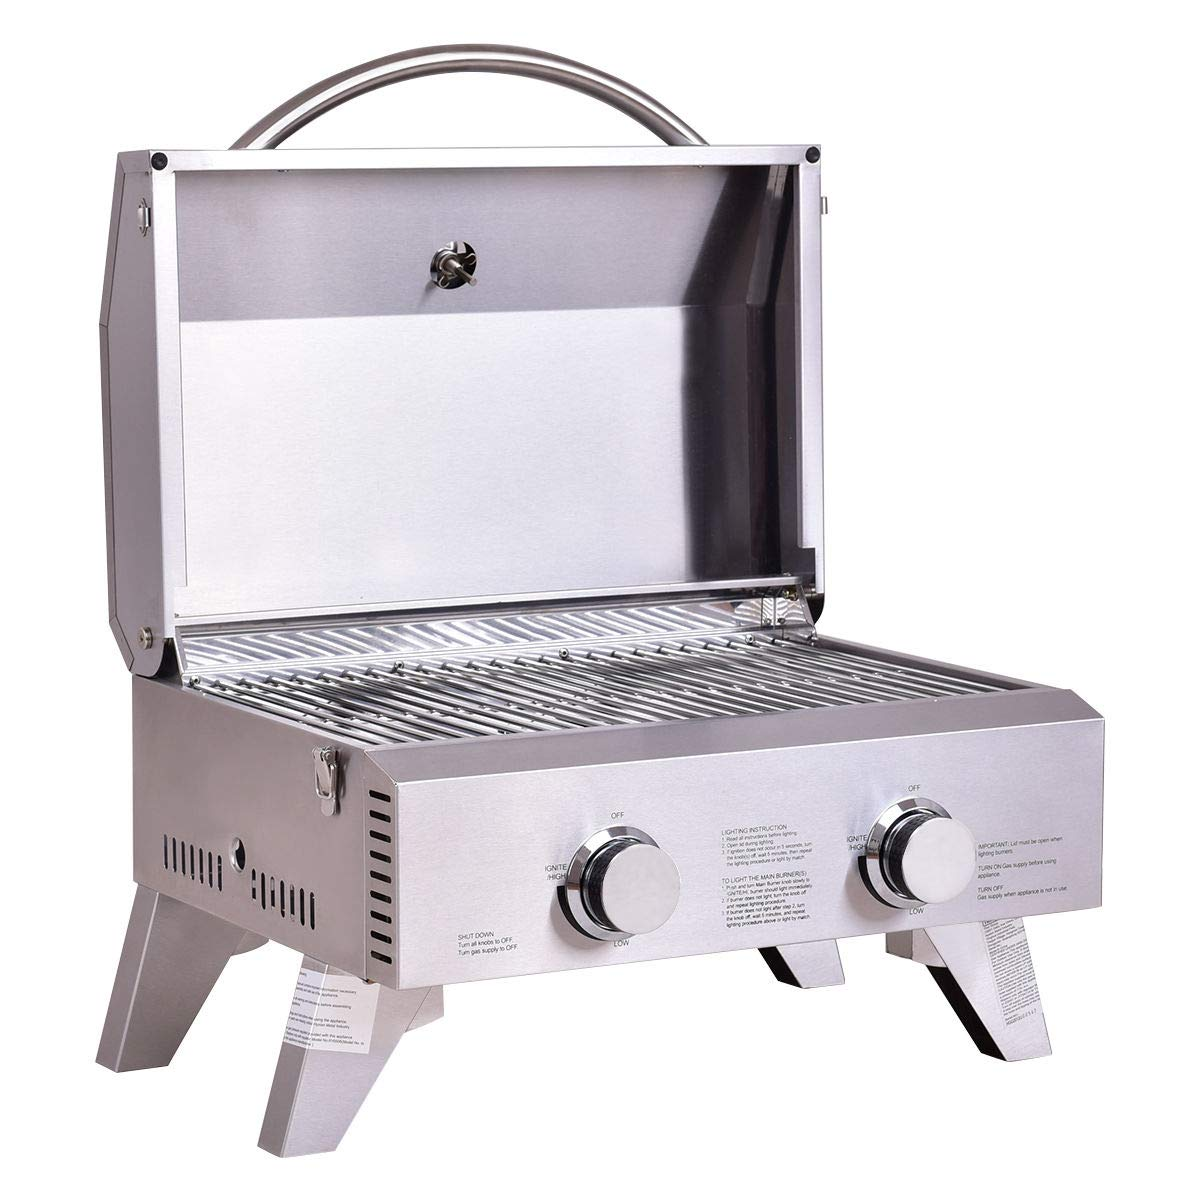 2 Burner Portable Stainless Steel BBQ Table Top Grill for Outdoors by Sales Shoppers